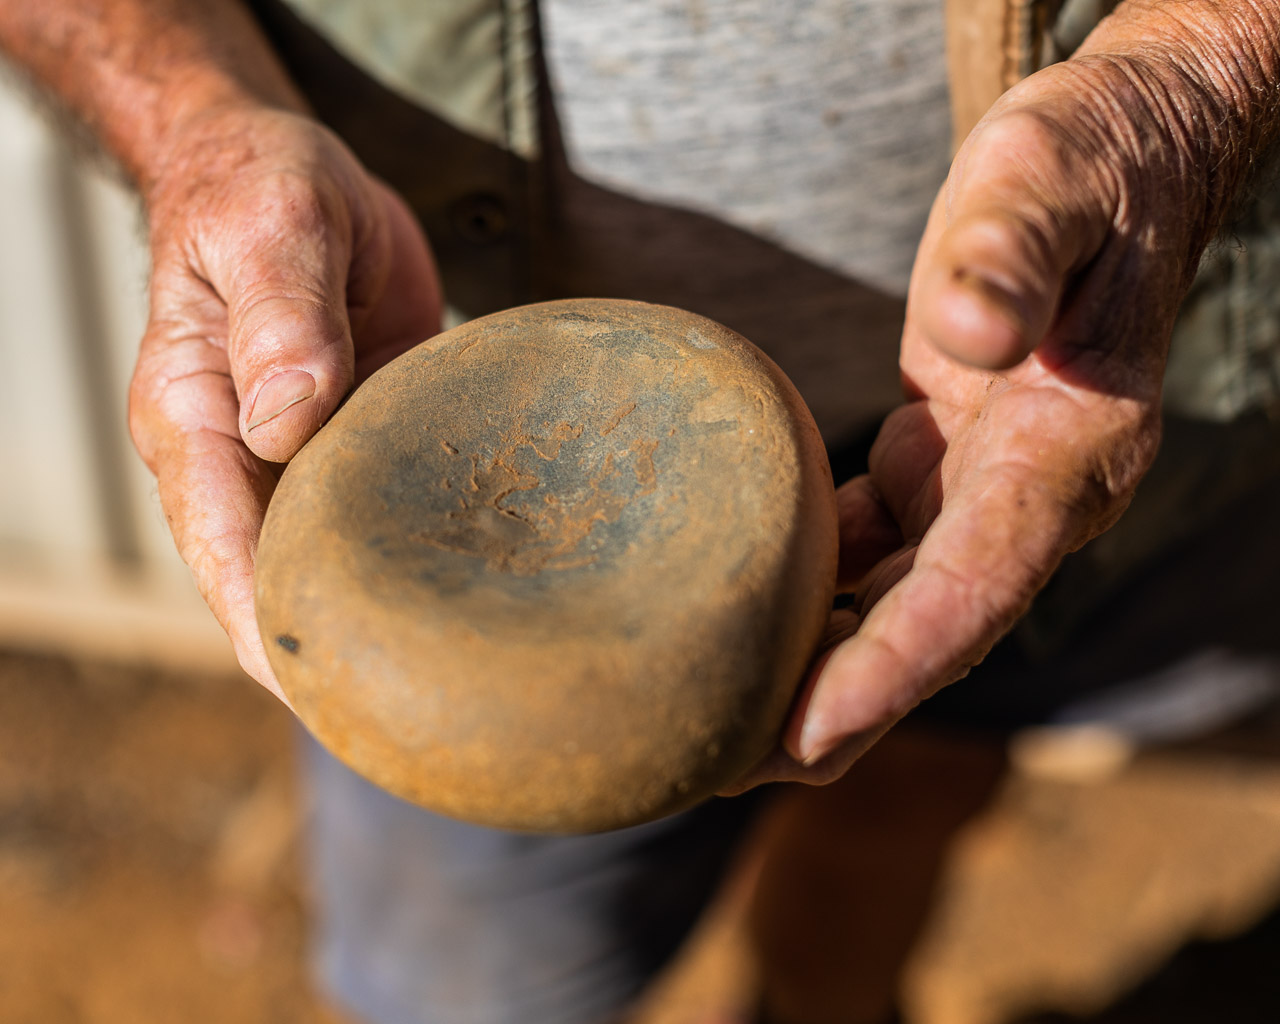 Aboriginal grind stone held in an old man's hands